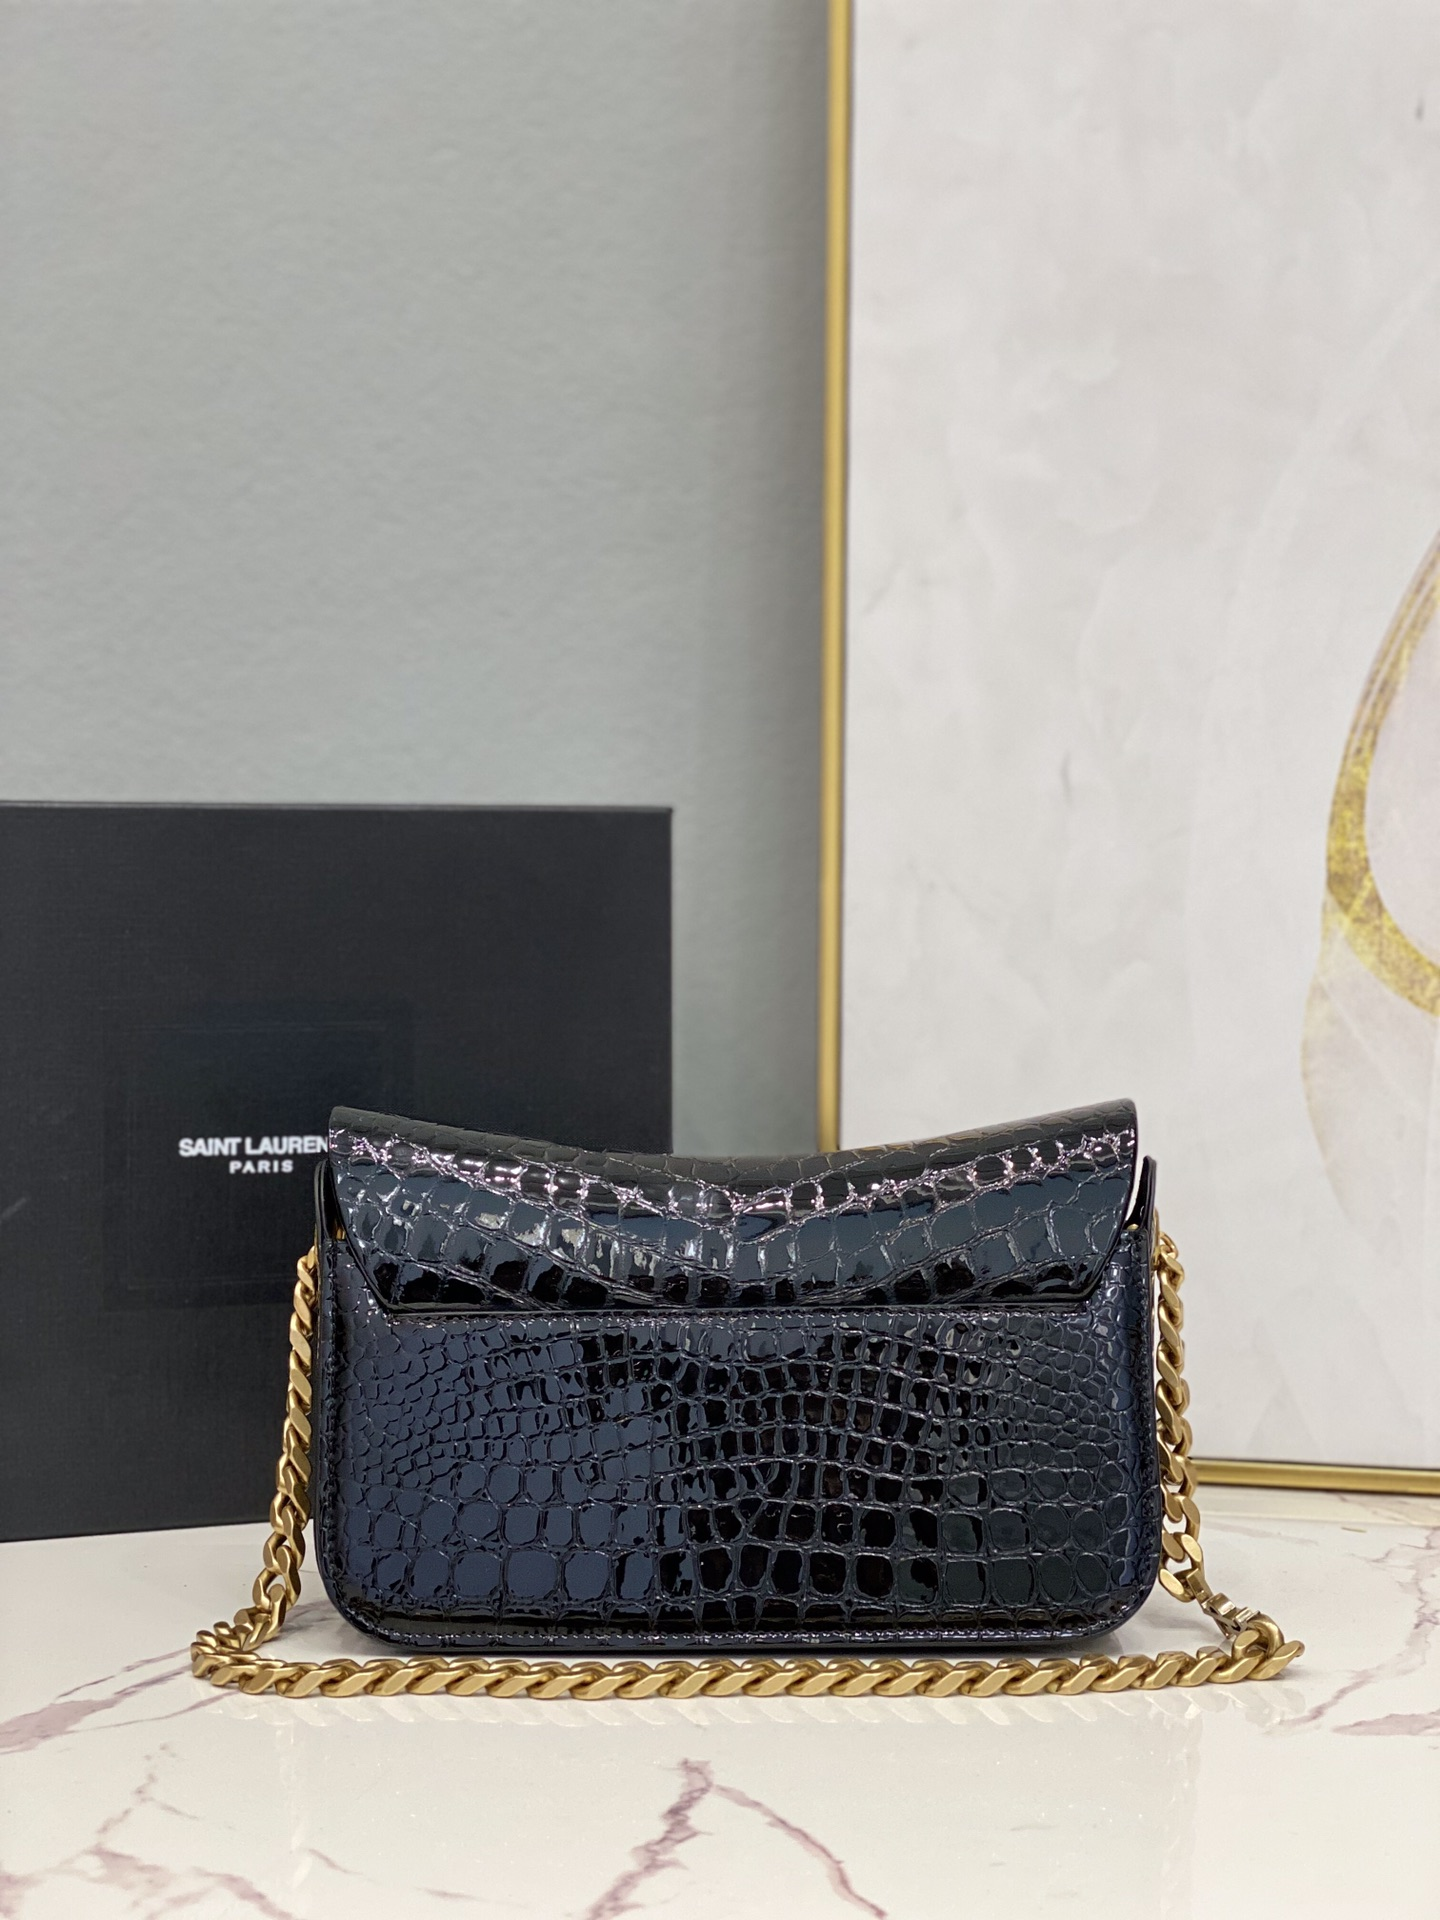 2021 Saint Laurent elise shoulder bag in alligator-embossed patent leather